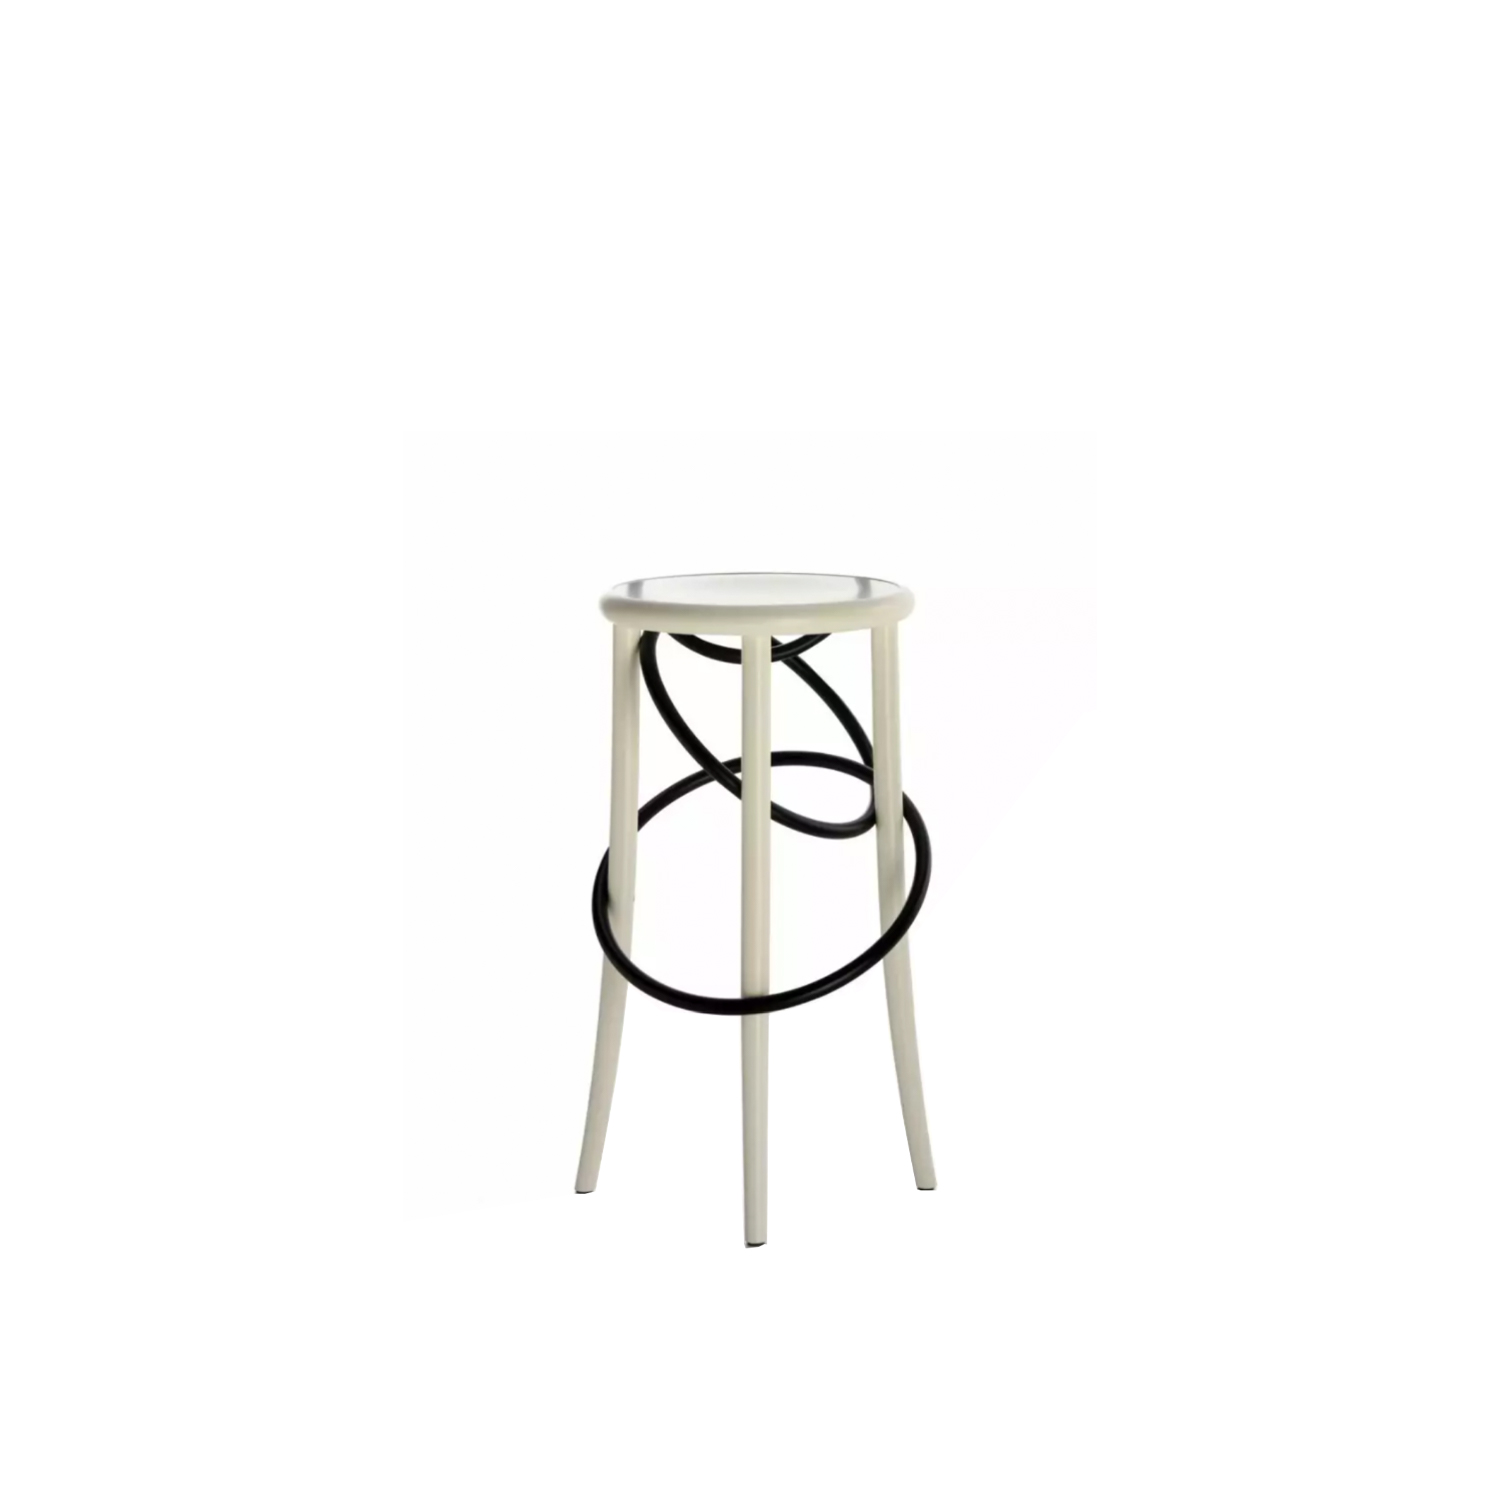 Cirque Upholstered Two Tone  - The light and playful circus theme is at the core of the Cirque family of stools designed by Martino Gamper for Wiener GTV Design. The bent element, which is the brand's signature trait, is surprisingly and unexpectedly inserted in the base of the stool, forming the outline of the seat in the form of a chain comprising two or three wooden rings that loop around the full length of the stool legs. This striking styling effect blends in seamlessly with the functionality of the seat, which is available in two heights: a tall, sleek stool with or without backrest, Cirque L and Cirque M, and the stable and well-proportioned low stool, Cirque S.